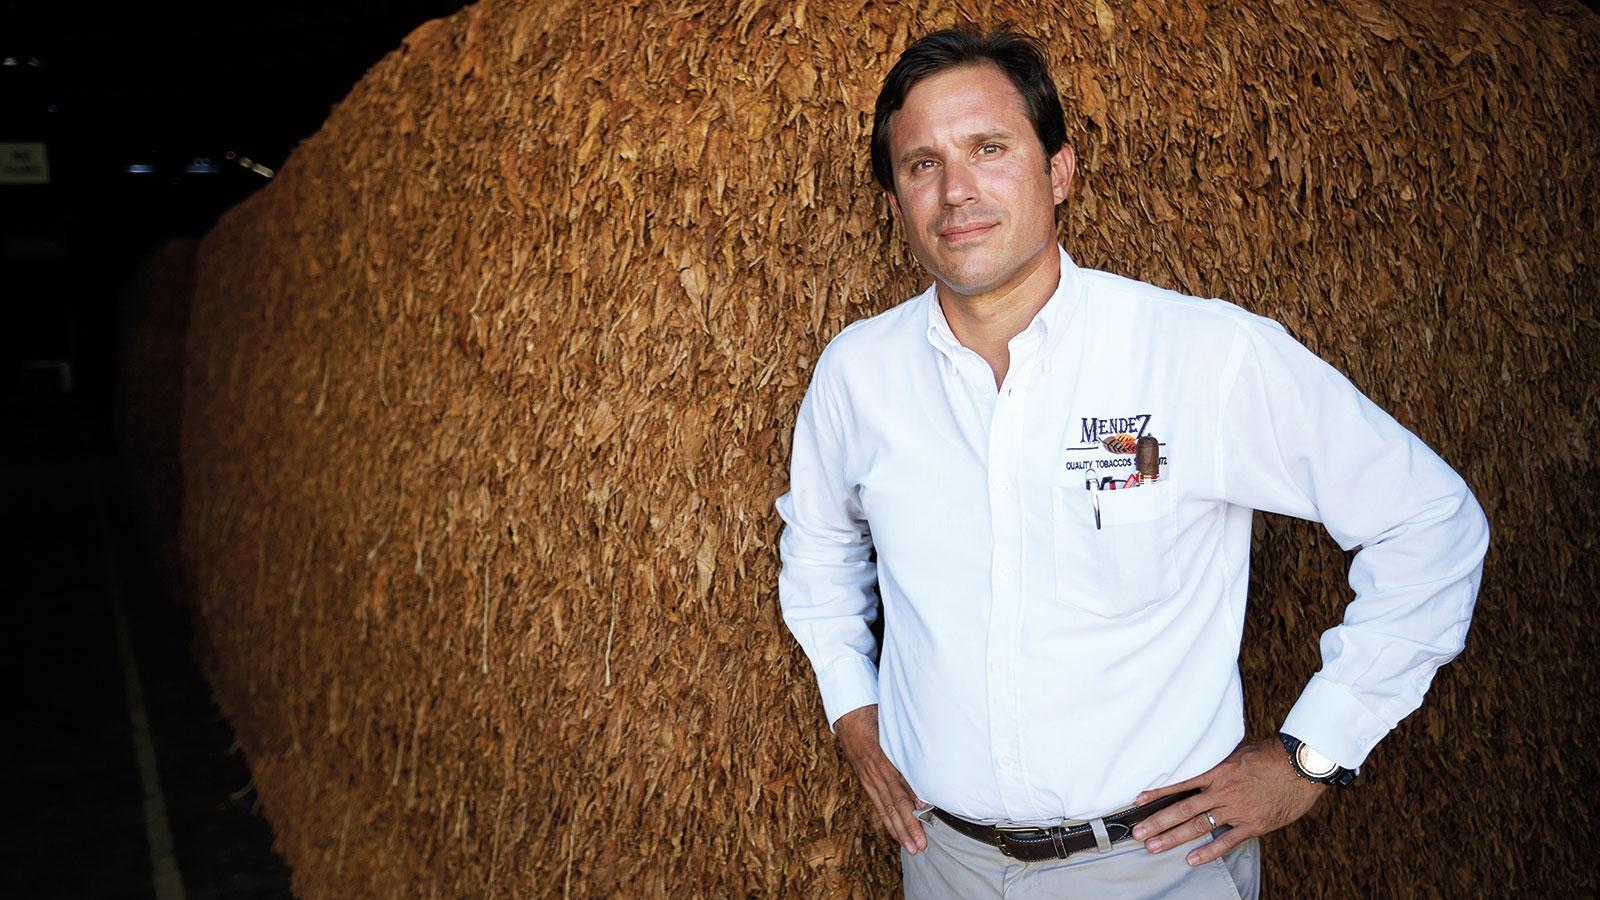 Siegfried Maruschke of José Mendez & Co. resurrected the old Pilotico tobacco for Altadis U.S.A.